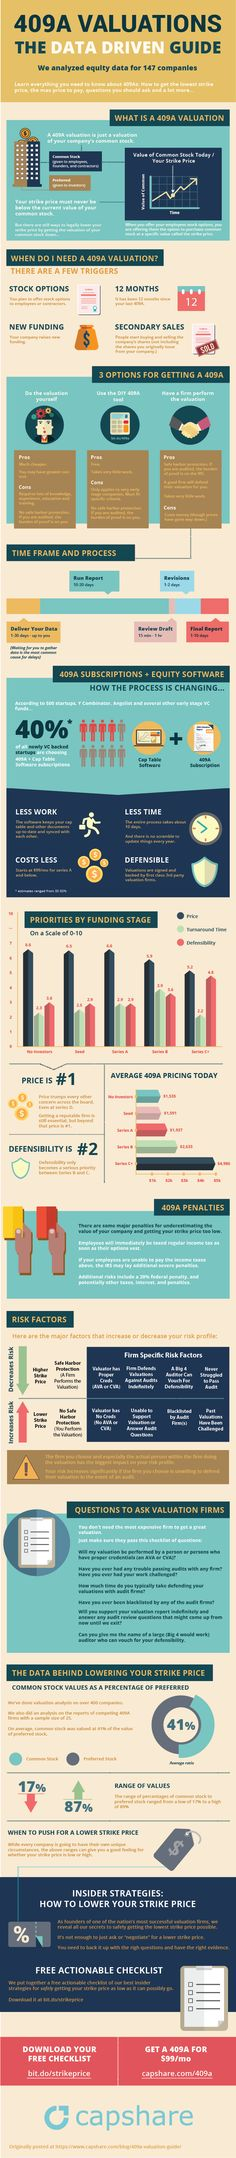 Valuations: The Data Driven Guide Infographic Term Sheet, Young Entrepreneurs, Social Media, Experiment, Platforms, Infographics, Business, Link, Infographic